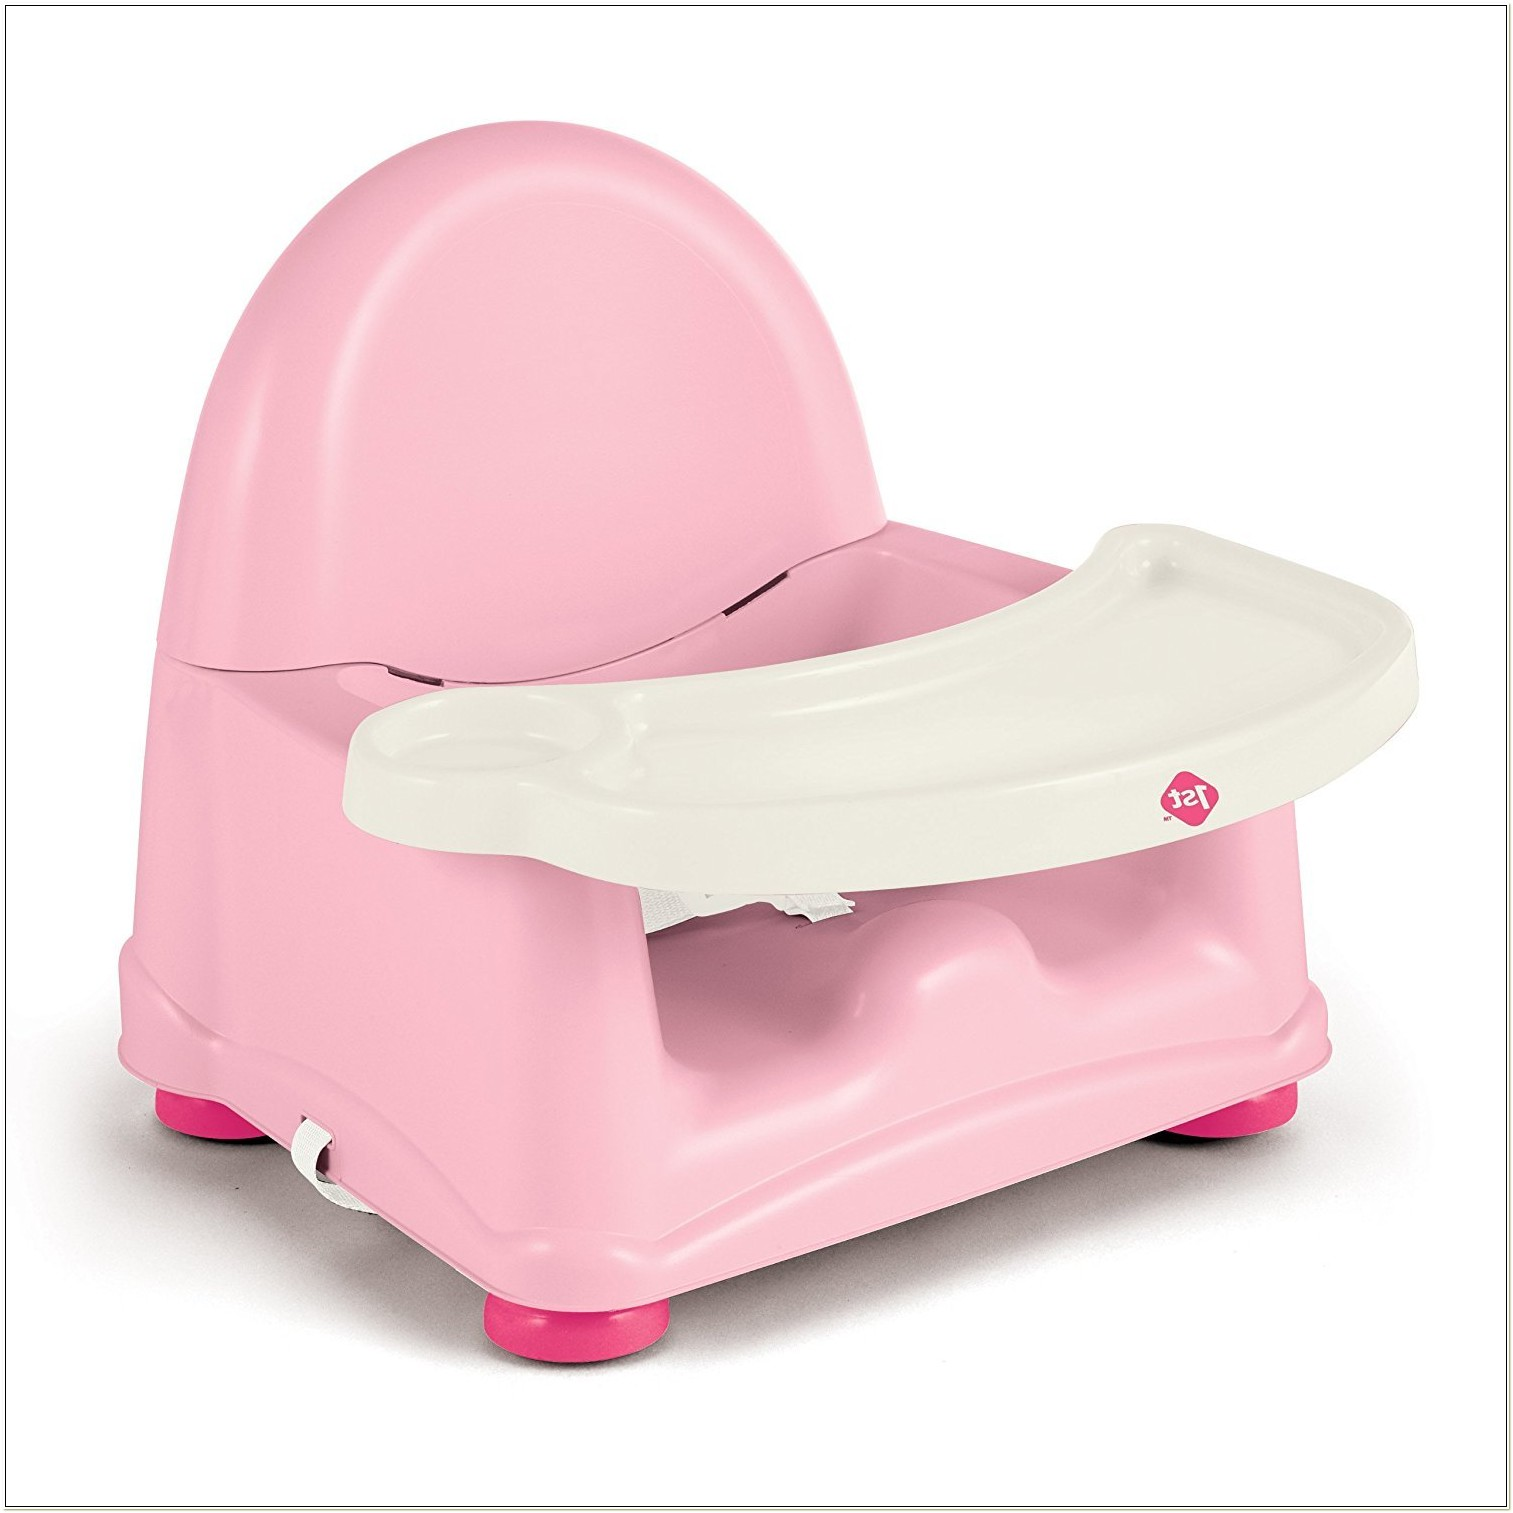 Booster Seat High Chair Canada